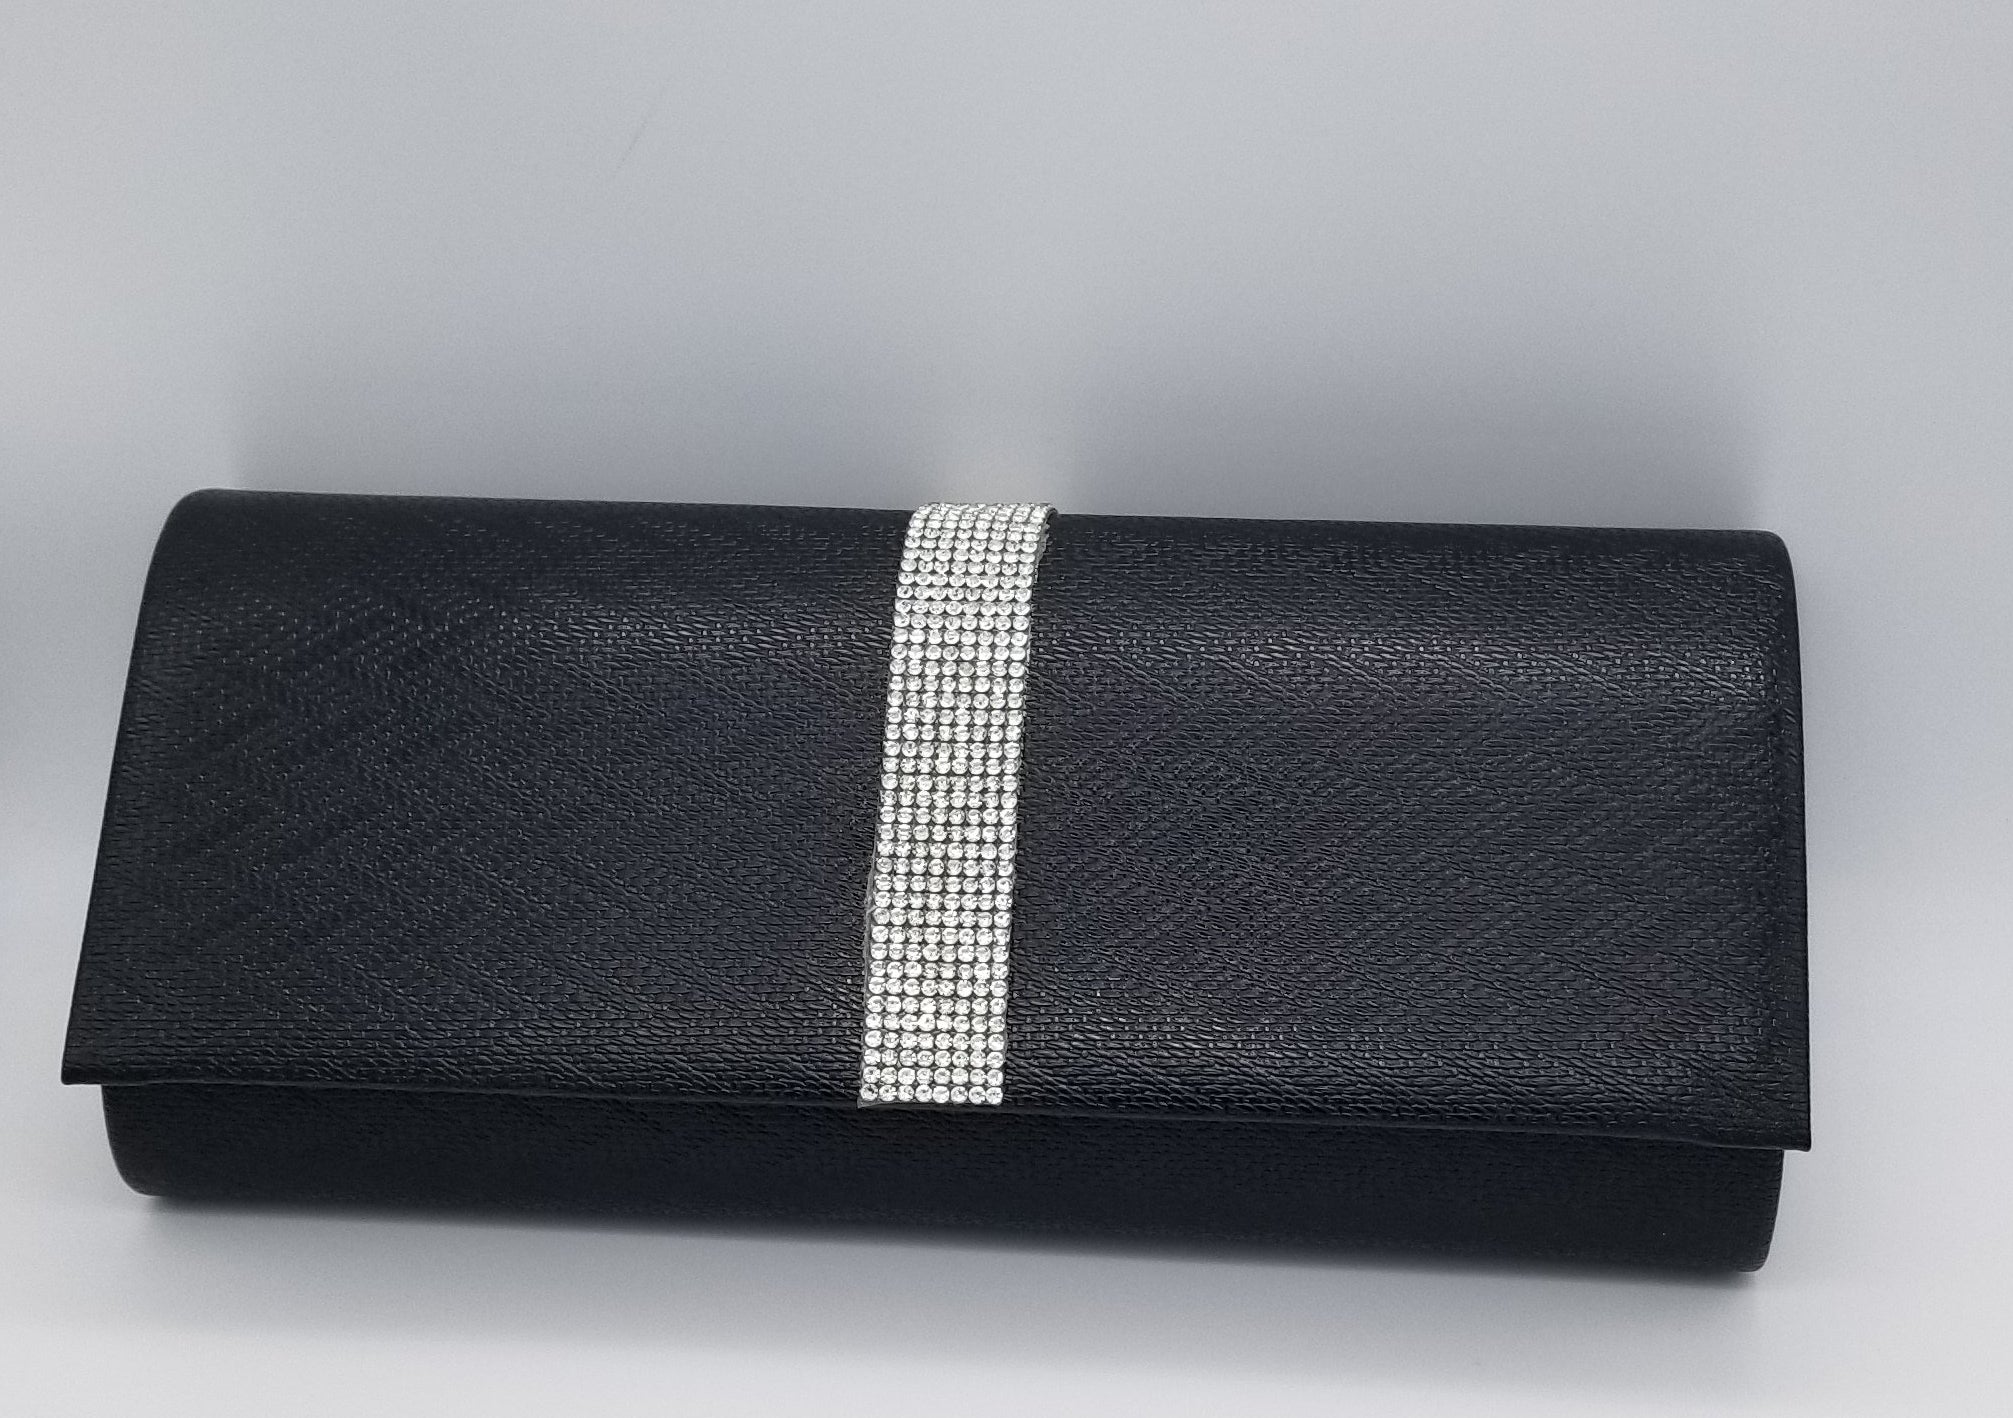 Tuxedo Black Evening Bag - Amethyst Shoes